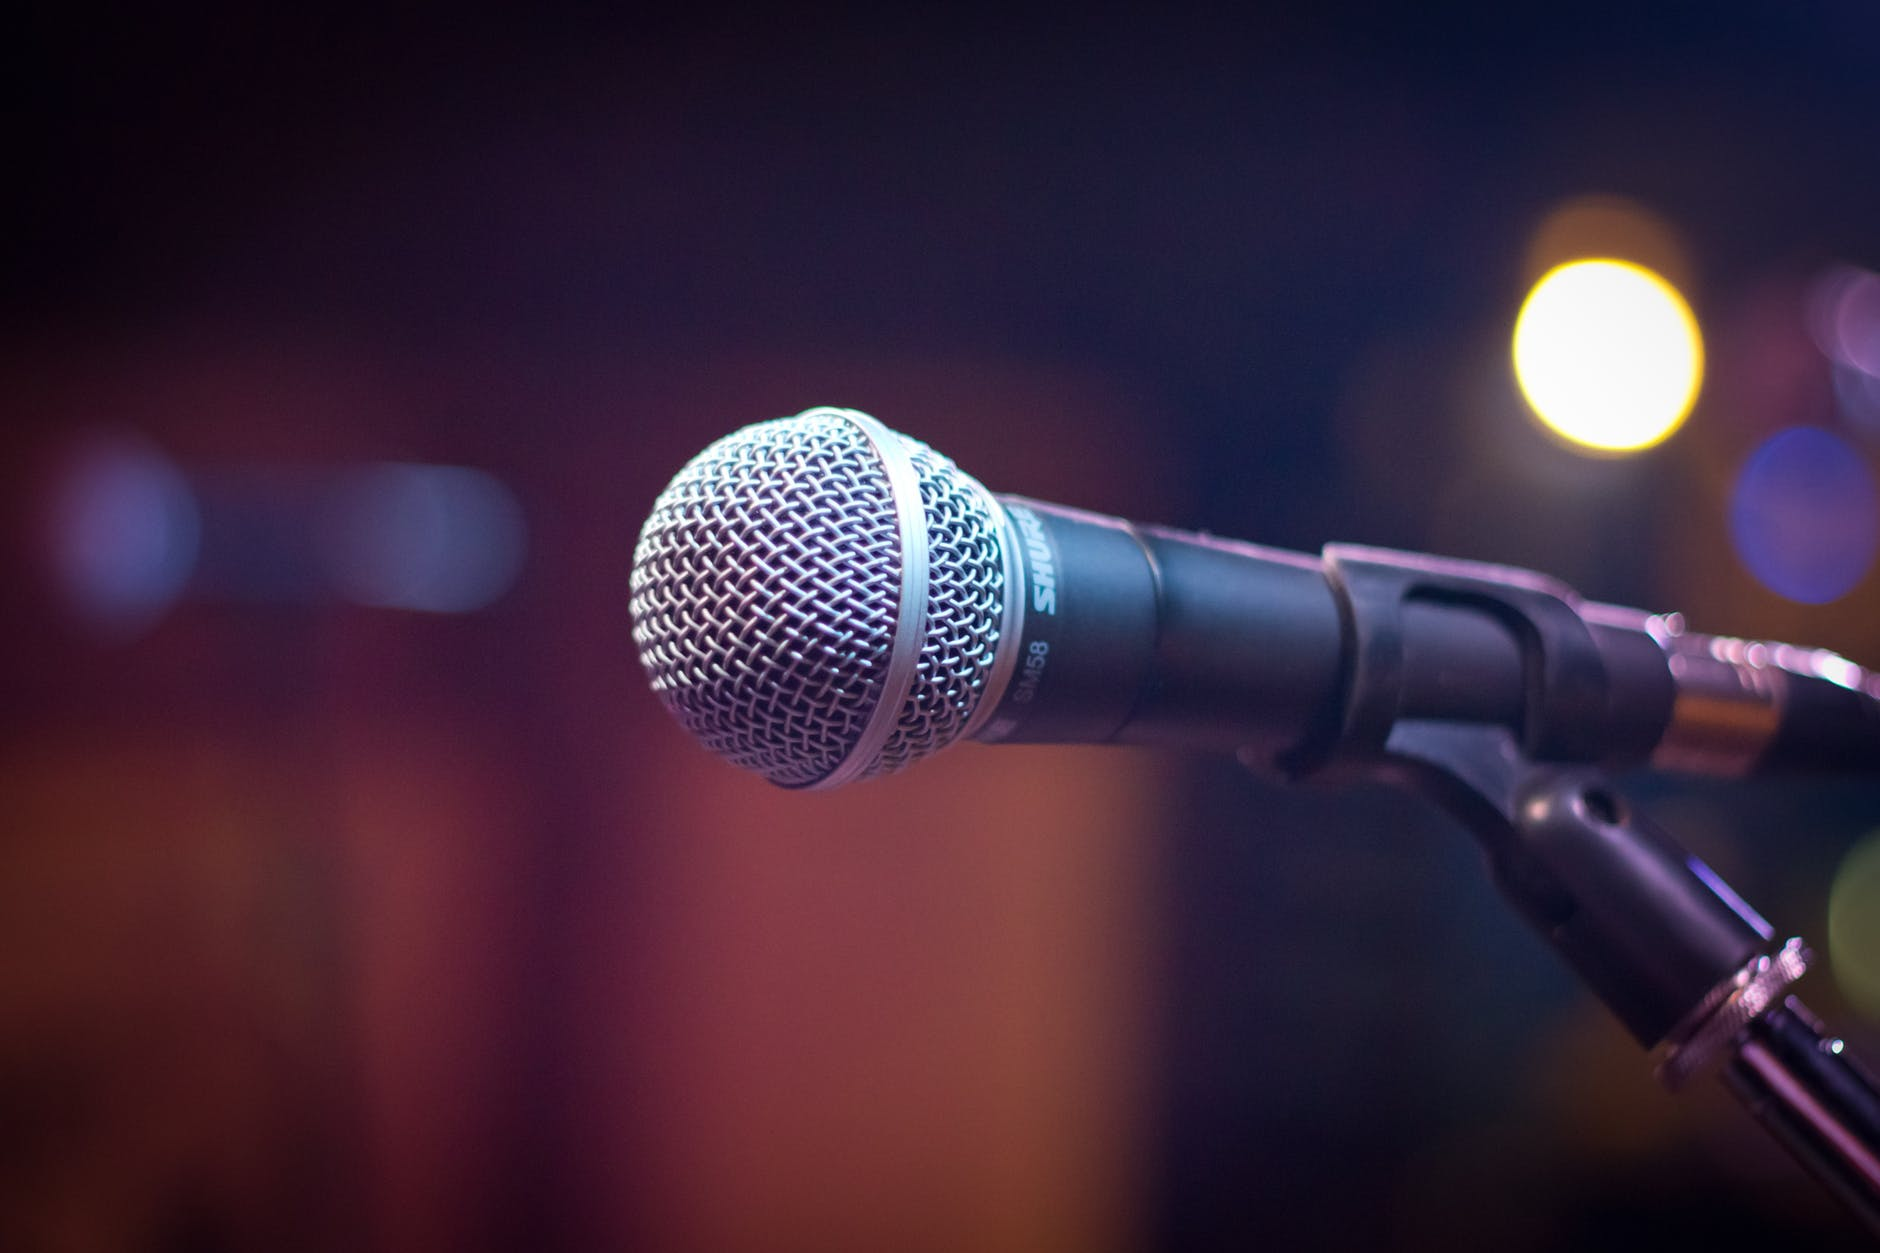 Close up of a microphone attached to a stand